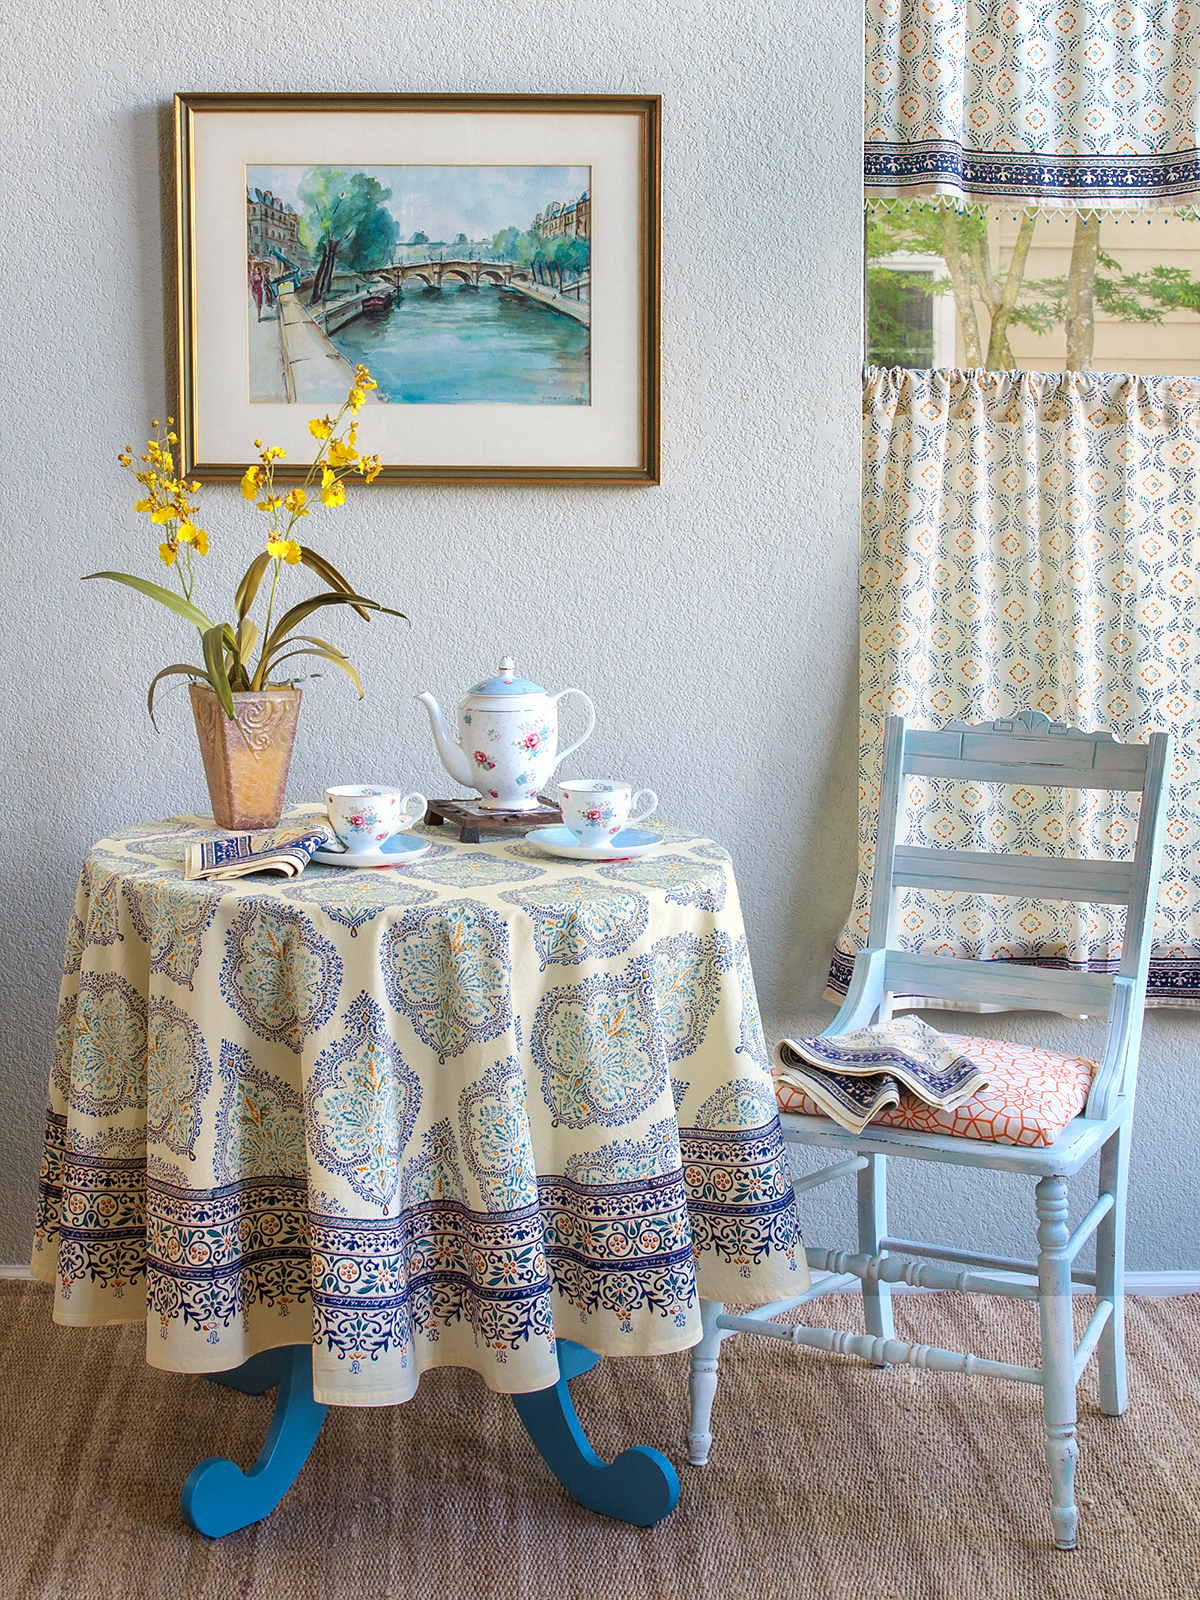 Yellow and Blue Bedding, Curtains & Table Linens